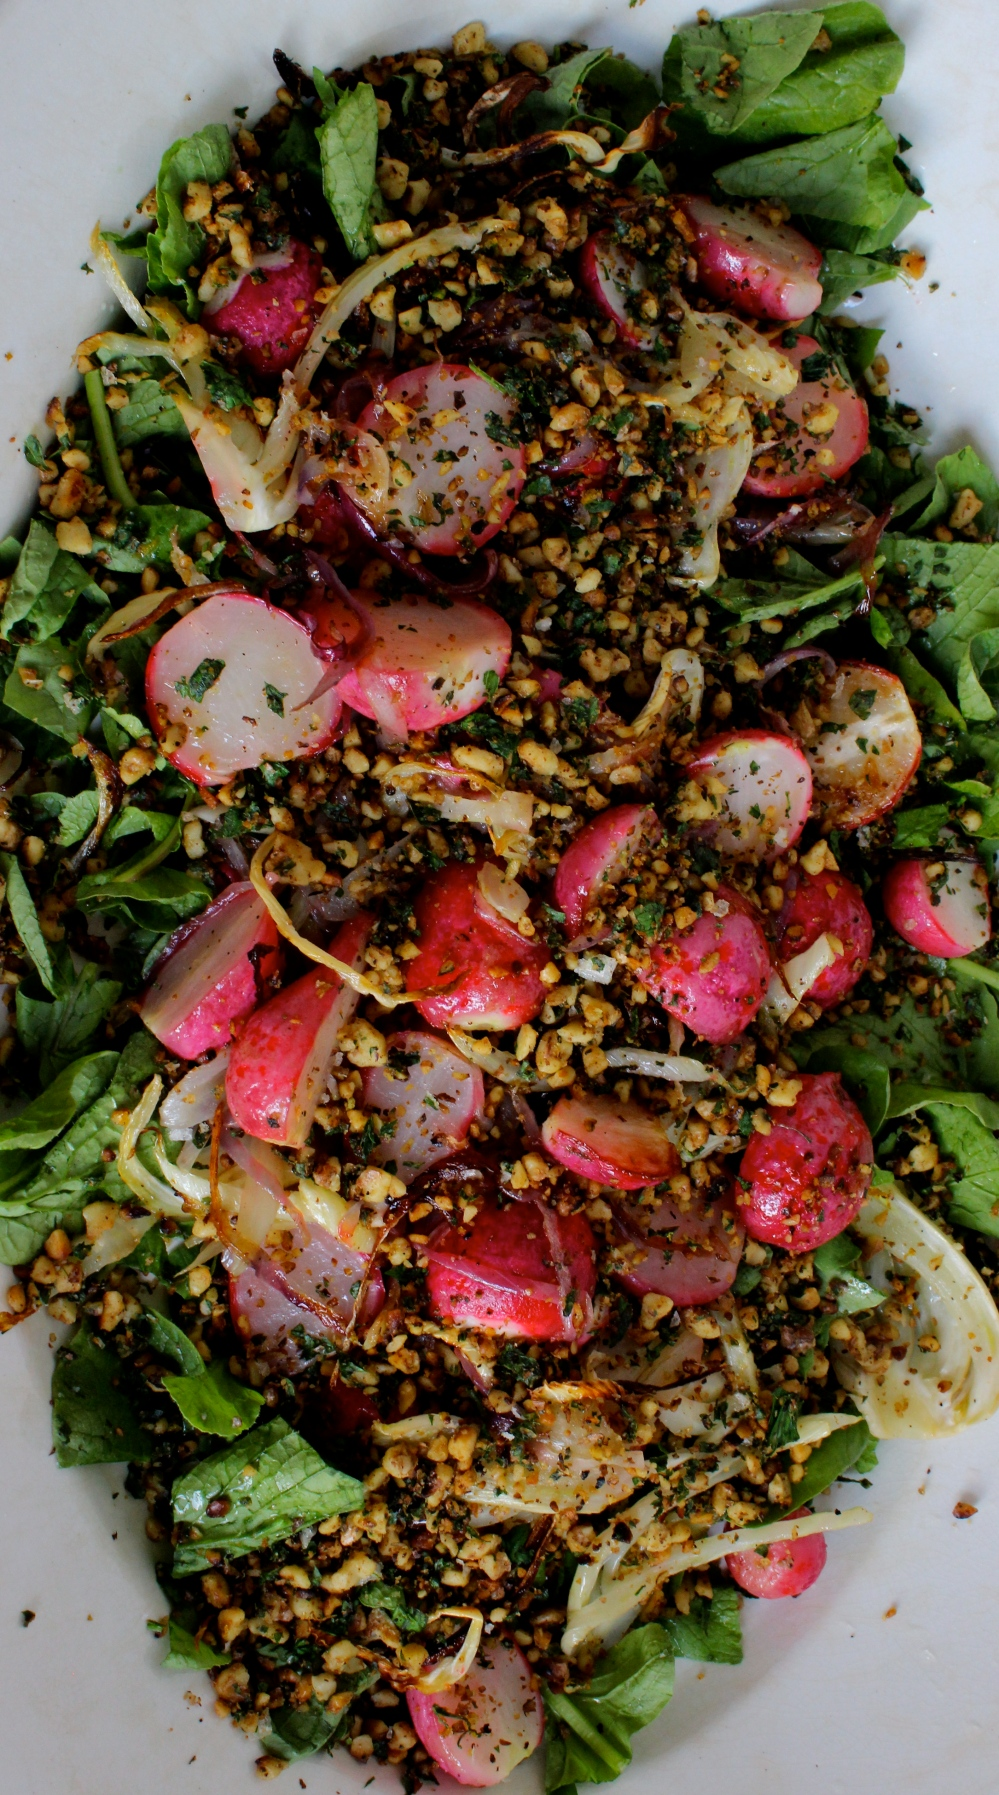 Roasted Radish and Fennel Salad with Walnut Gremolata (Cotton-Tail Salad)